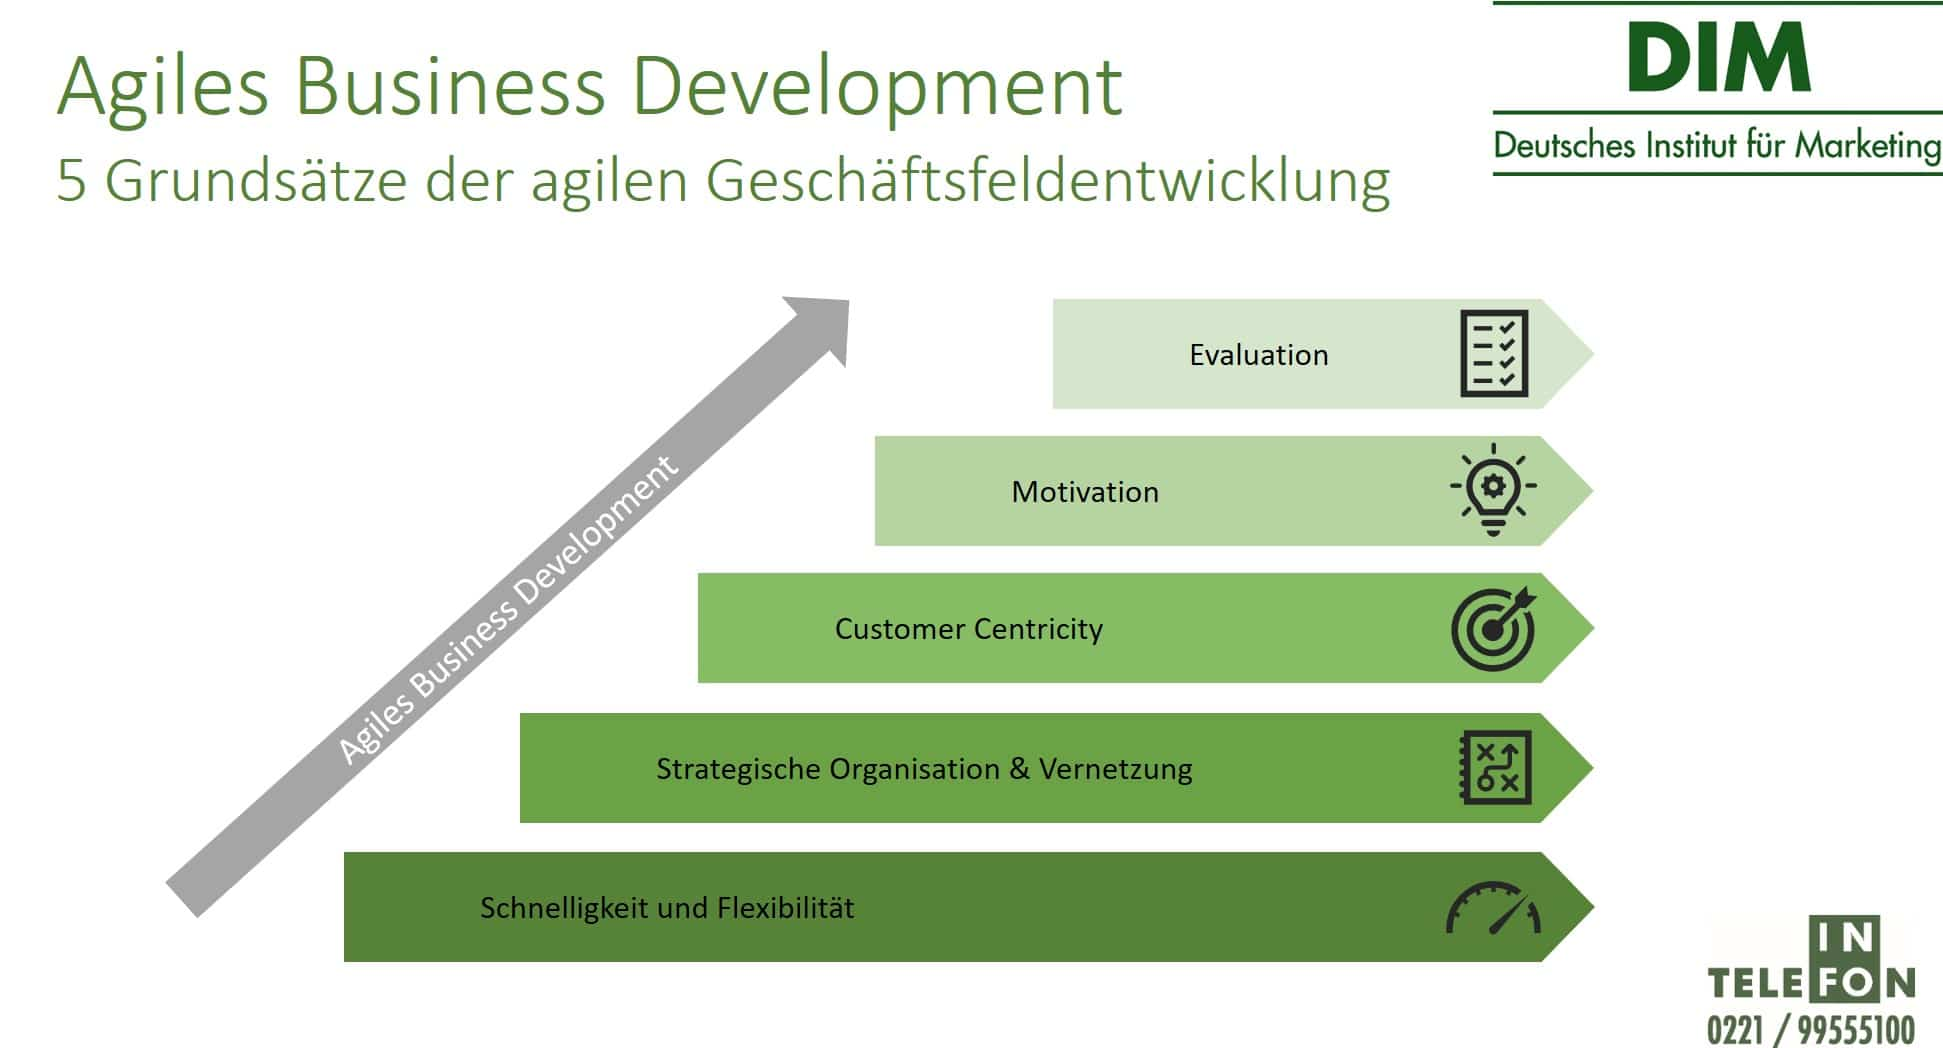 Agiles Business Development